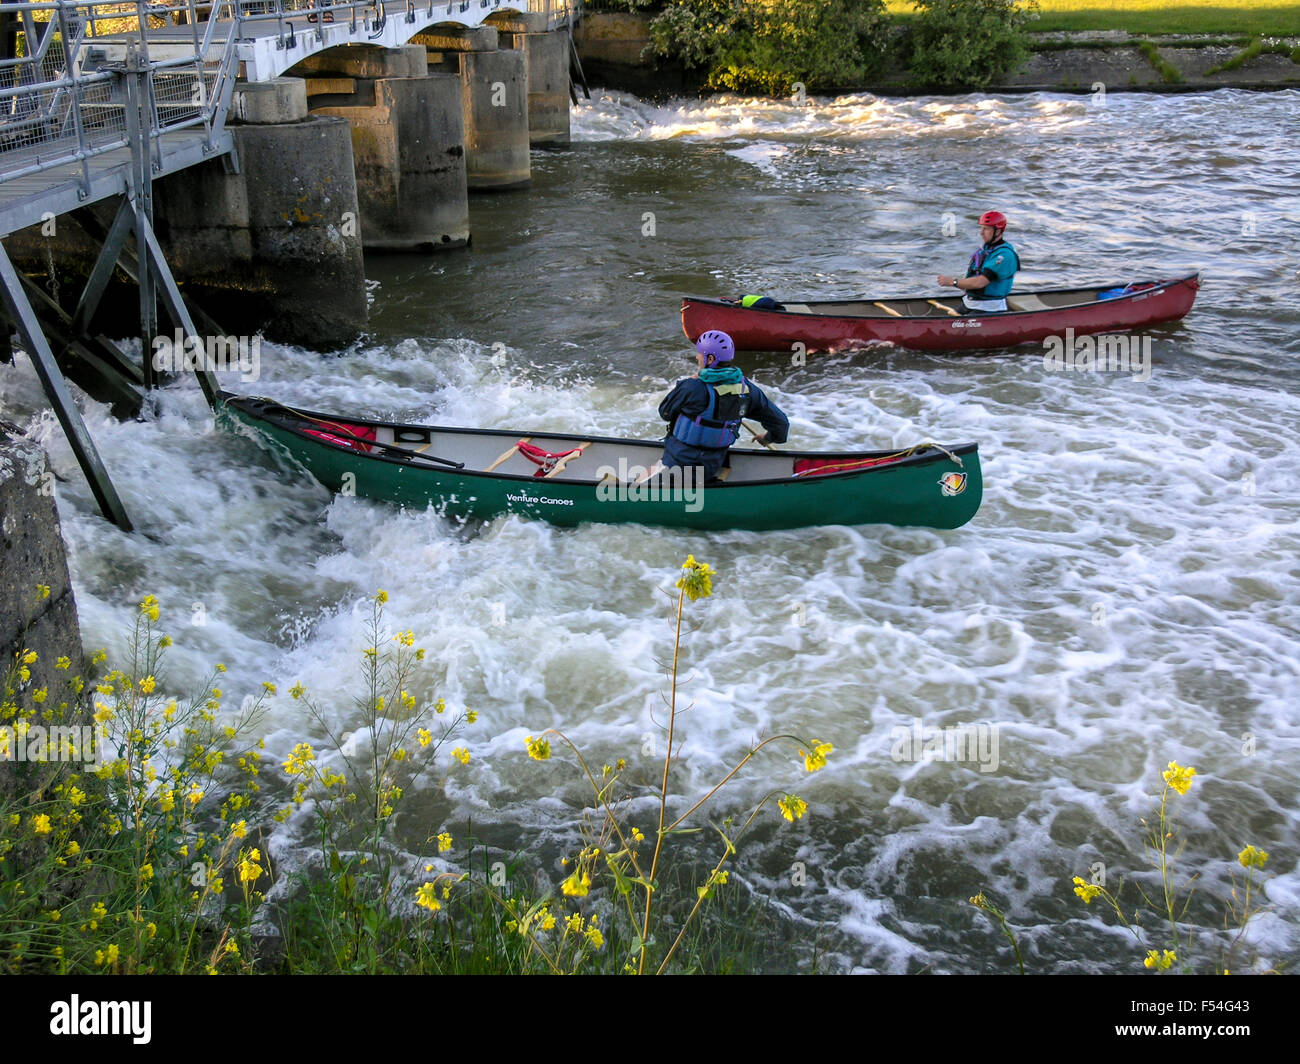 practicing-kayaking-against-the-stream-united-kingdom-F54G43.jpg